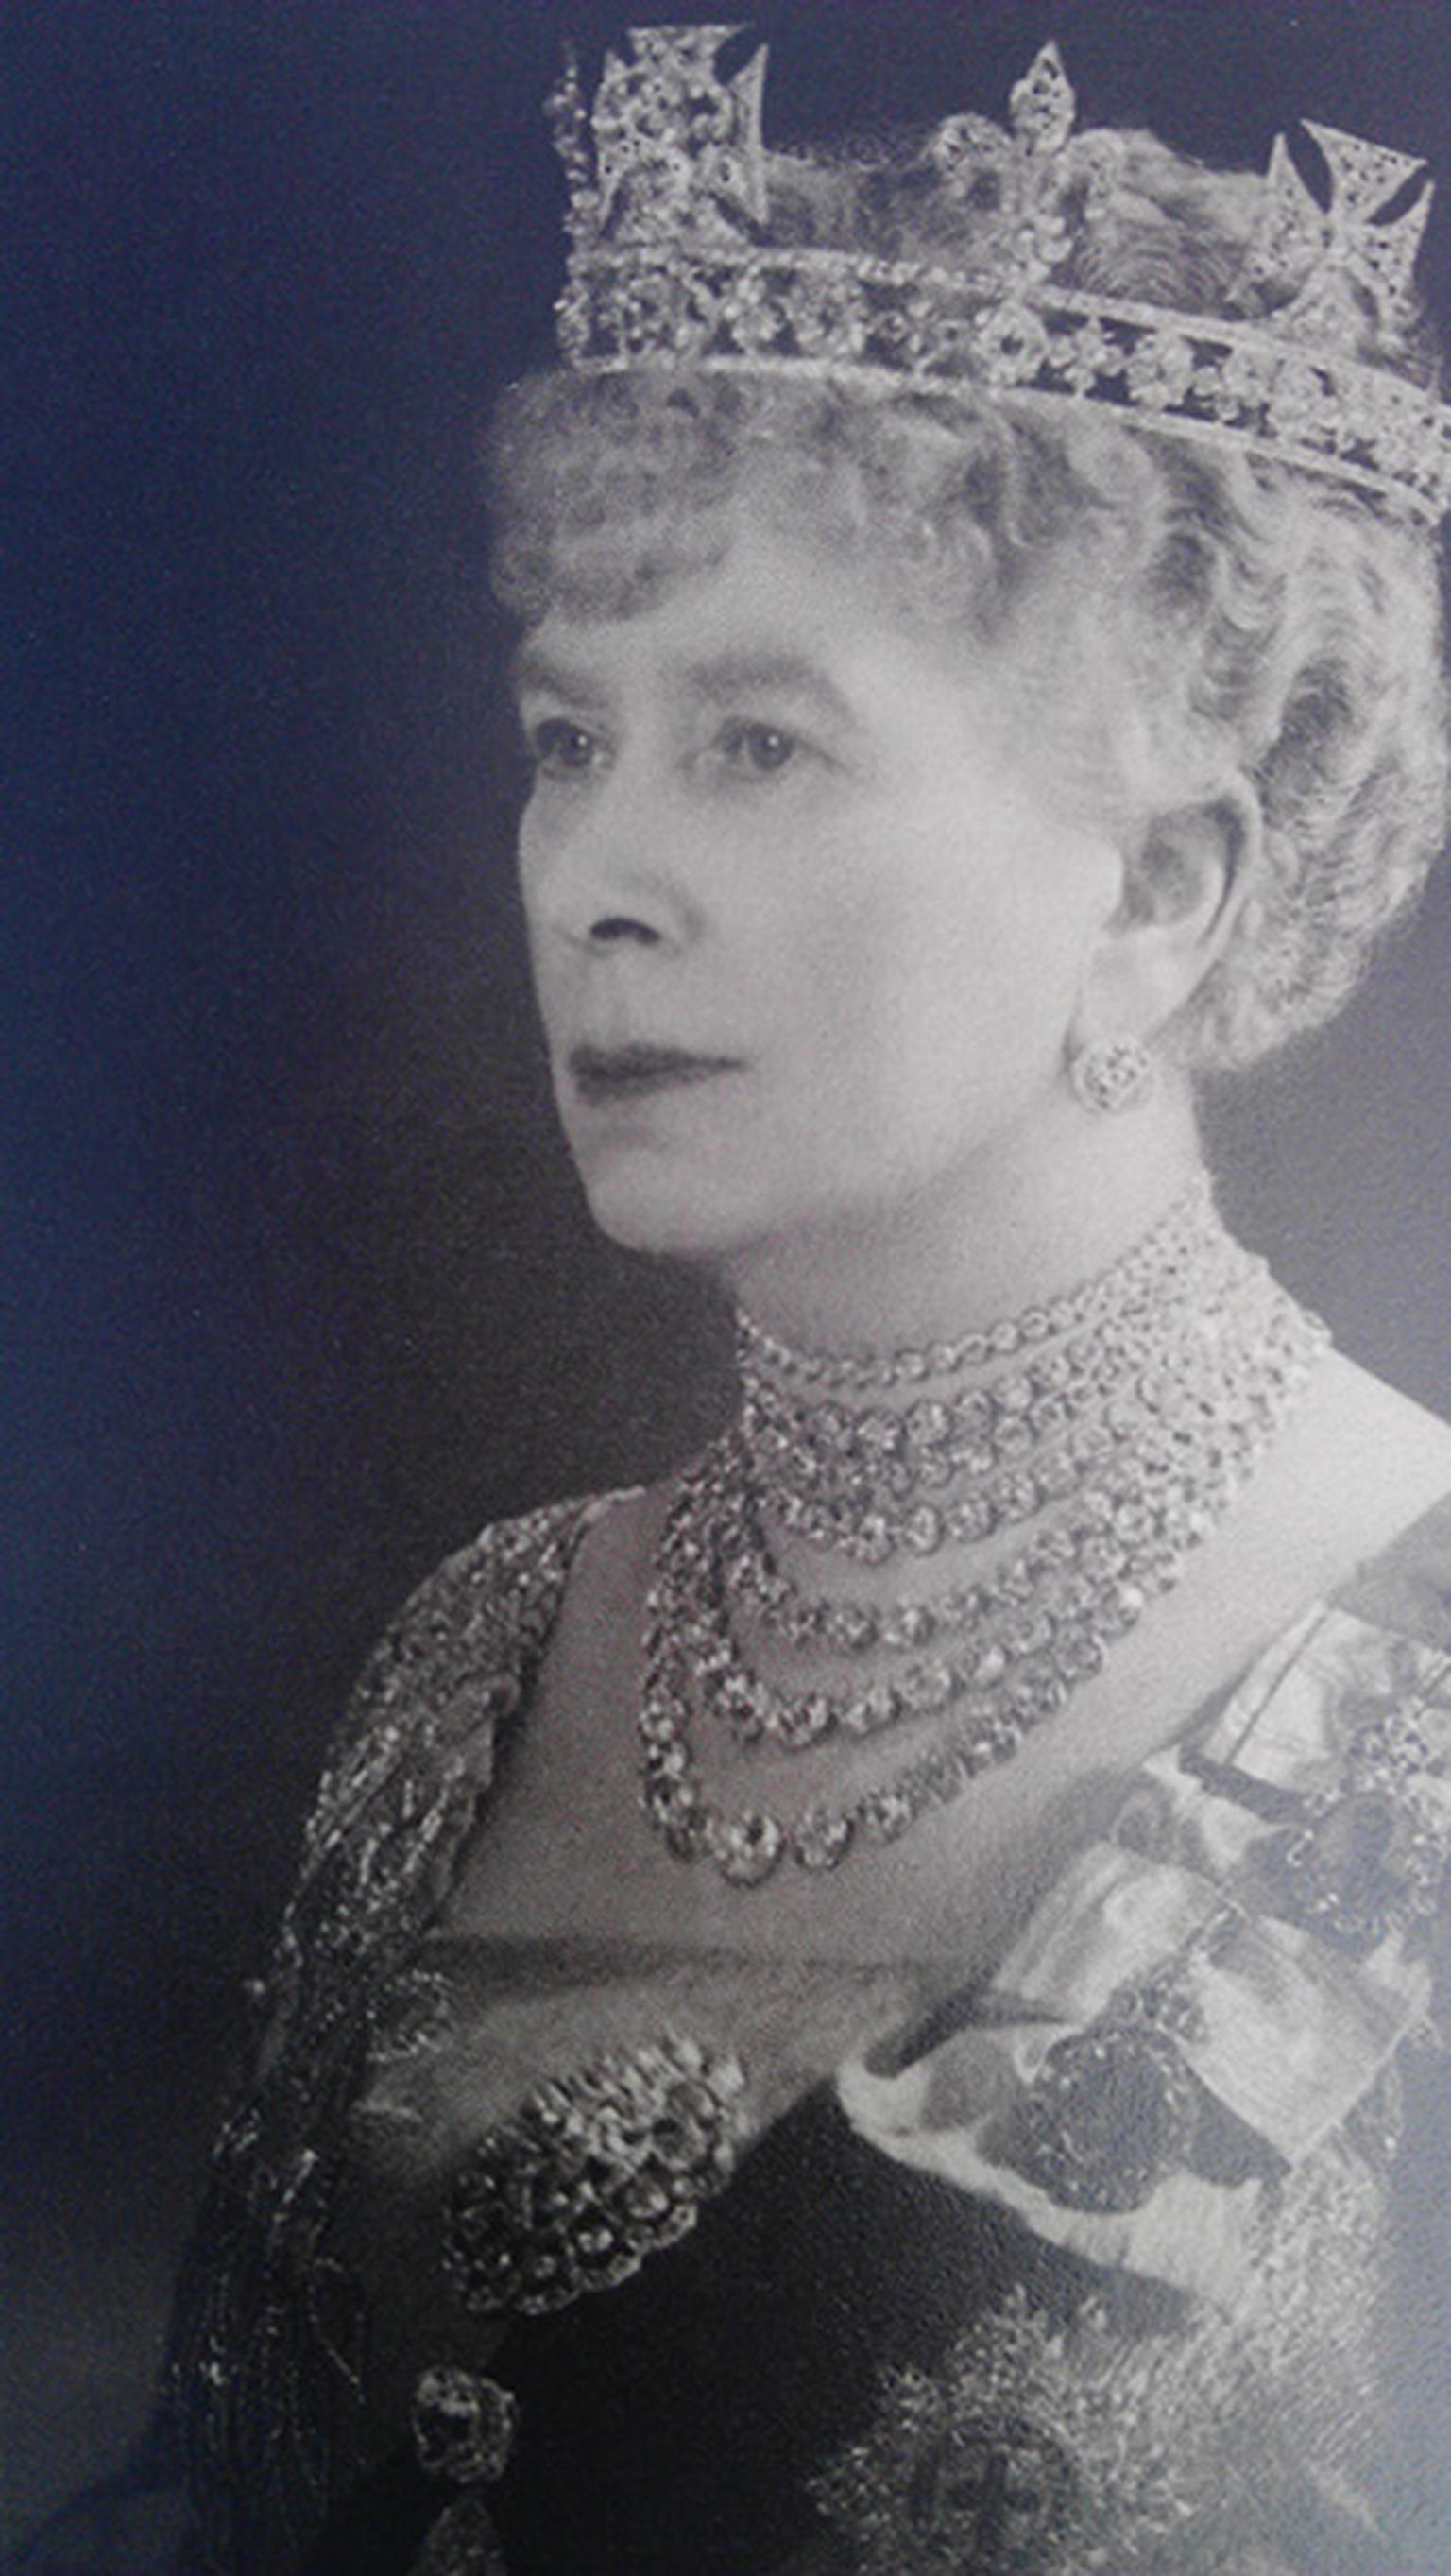 Queen-Mary-1938-wearing-Queen-Alexandra's-collet-necklace.jpg